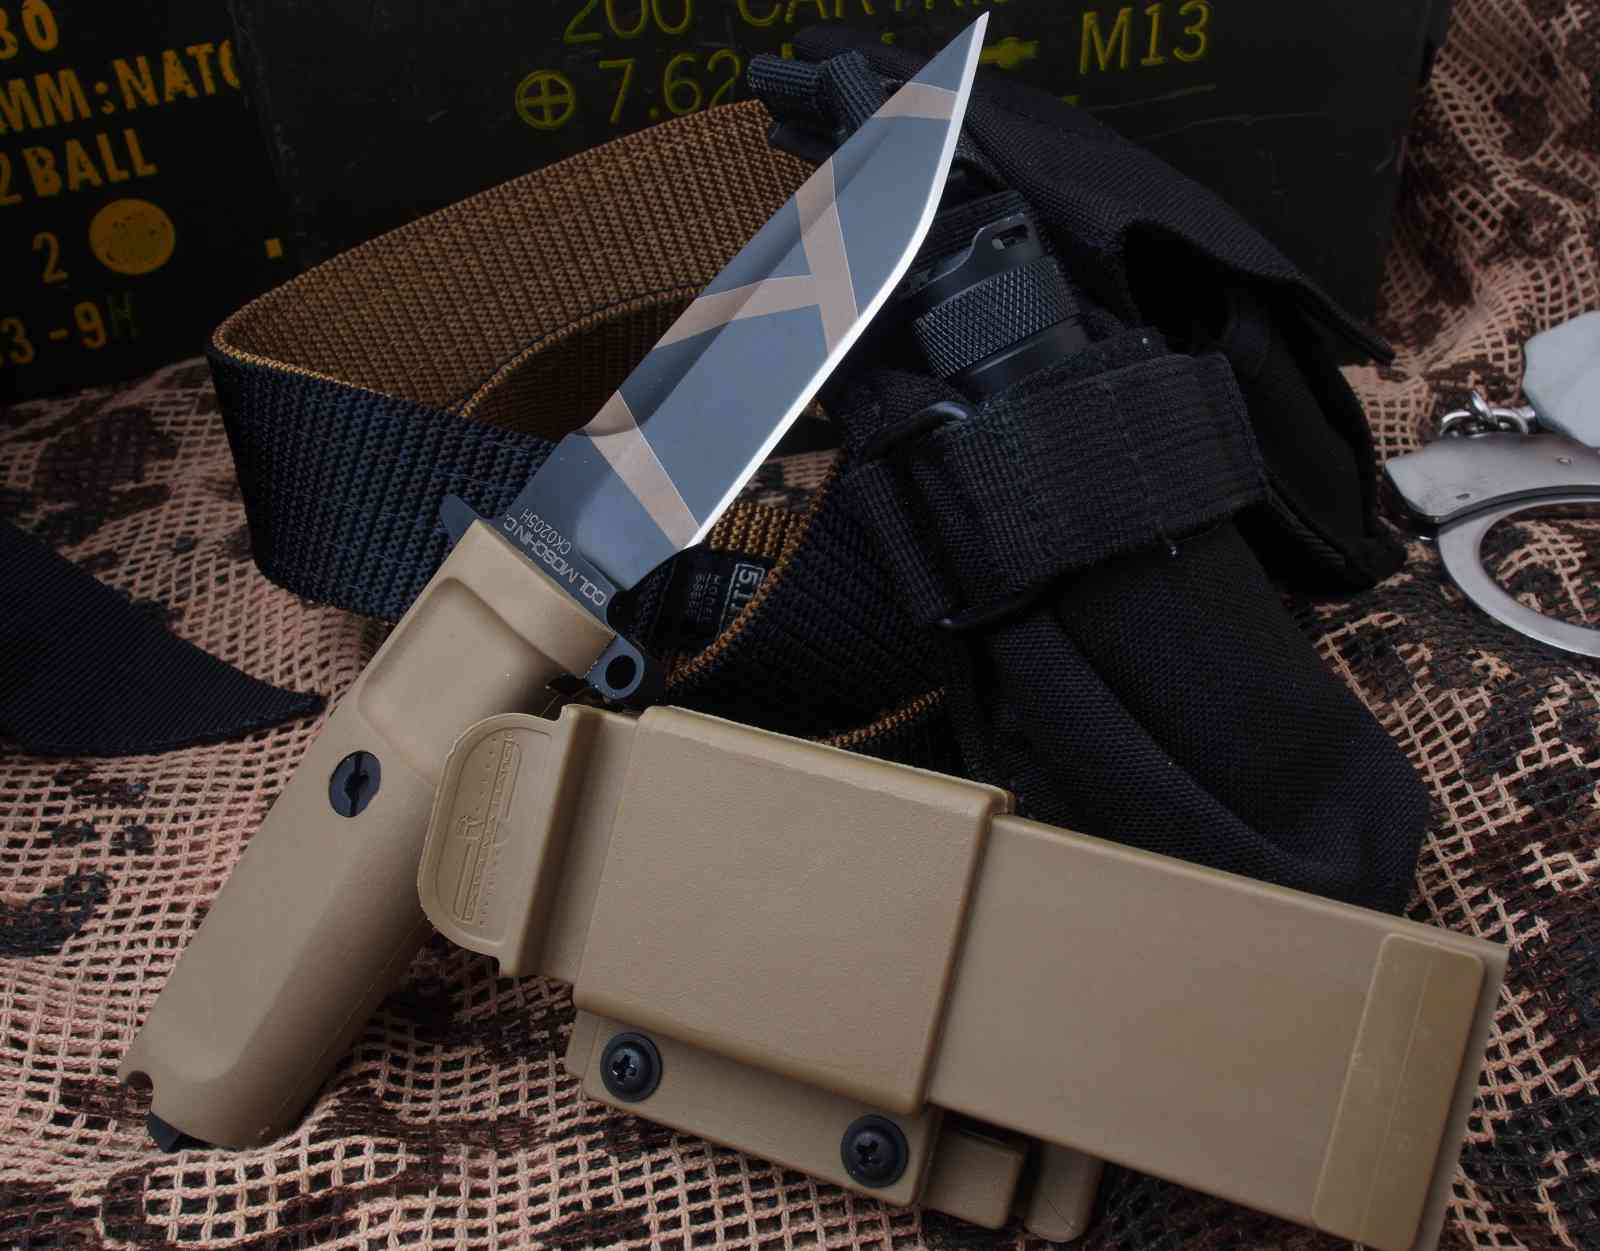 Extrema Ratio Col Moschin Compact Desert Warfare 1